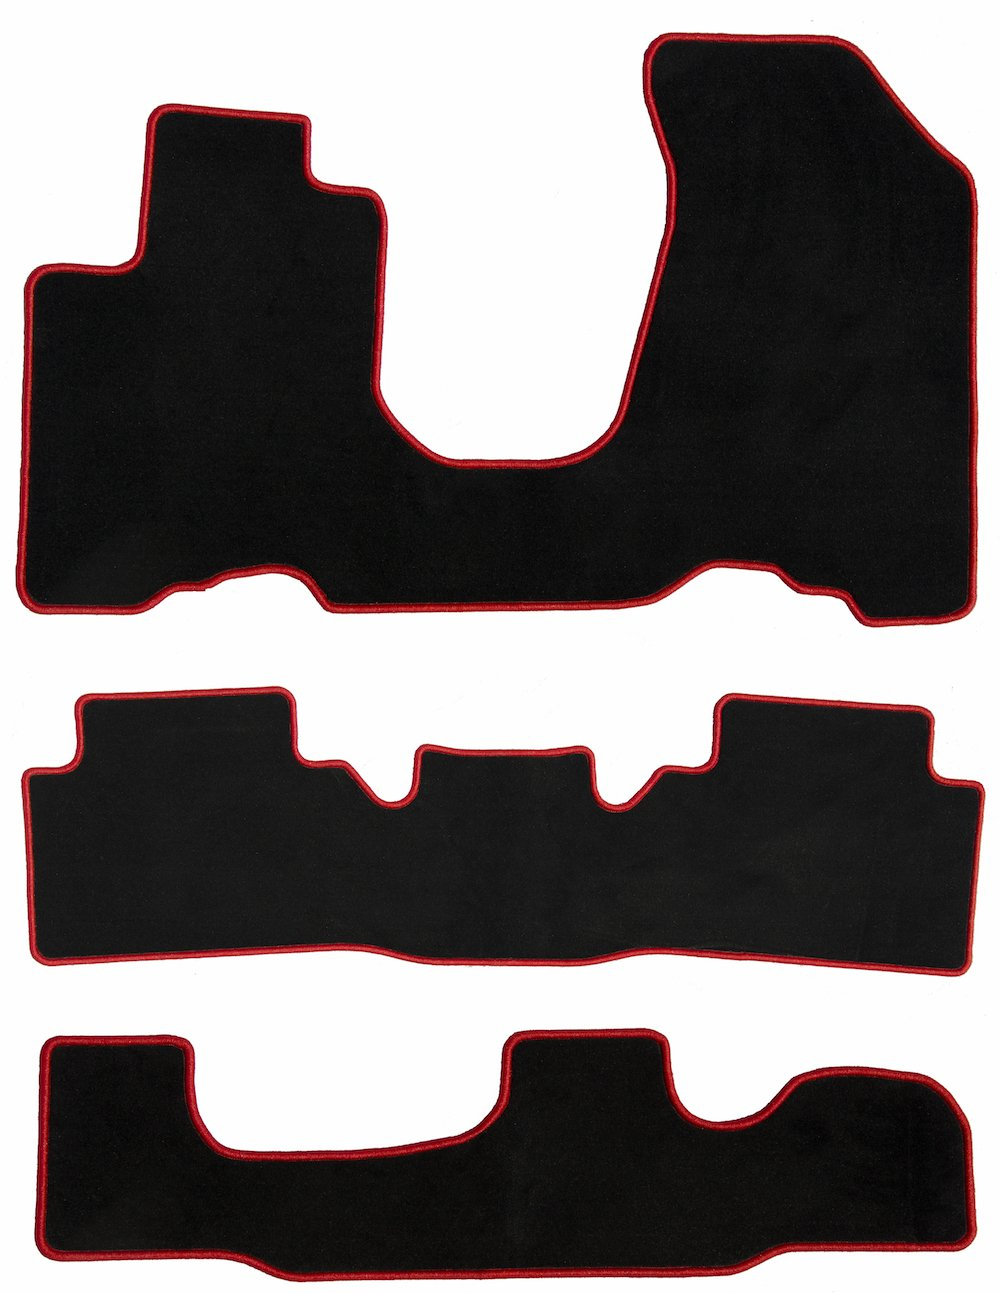 2nd /& 3rd Row 2008 2006 GGBAILEY D3686A-LSC-BLK/_BR Custom Fit Car Mats for 2005 Passenger 2009 Chevrolet Equinox Black with Red Edging Driver 3 Piece Floor 2007